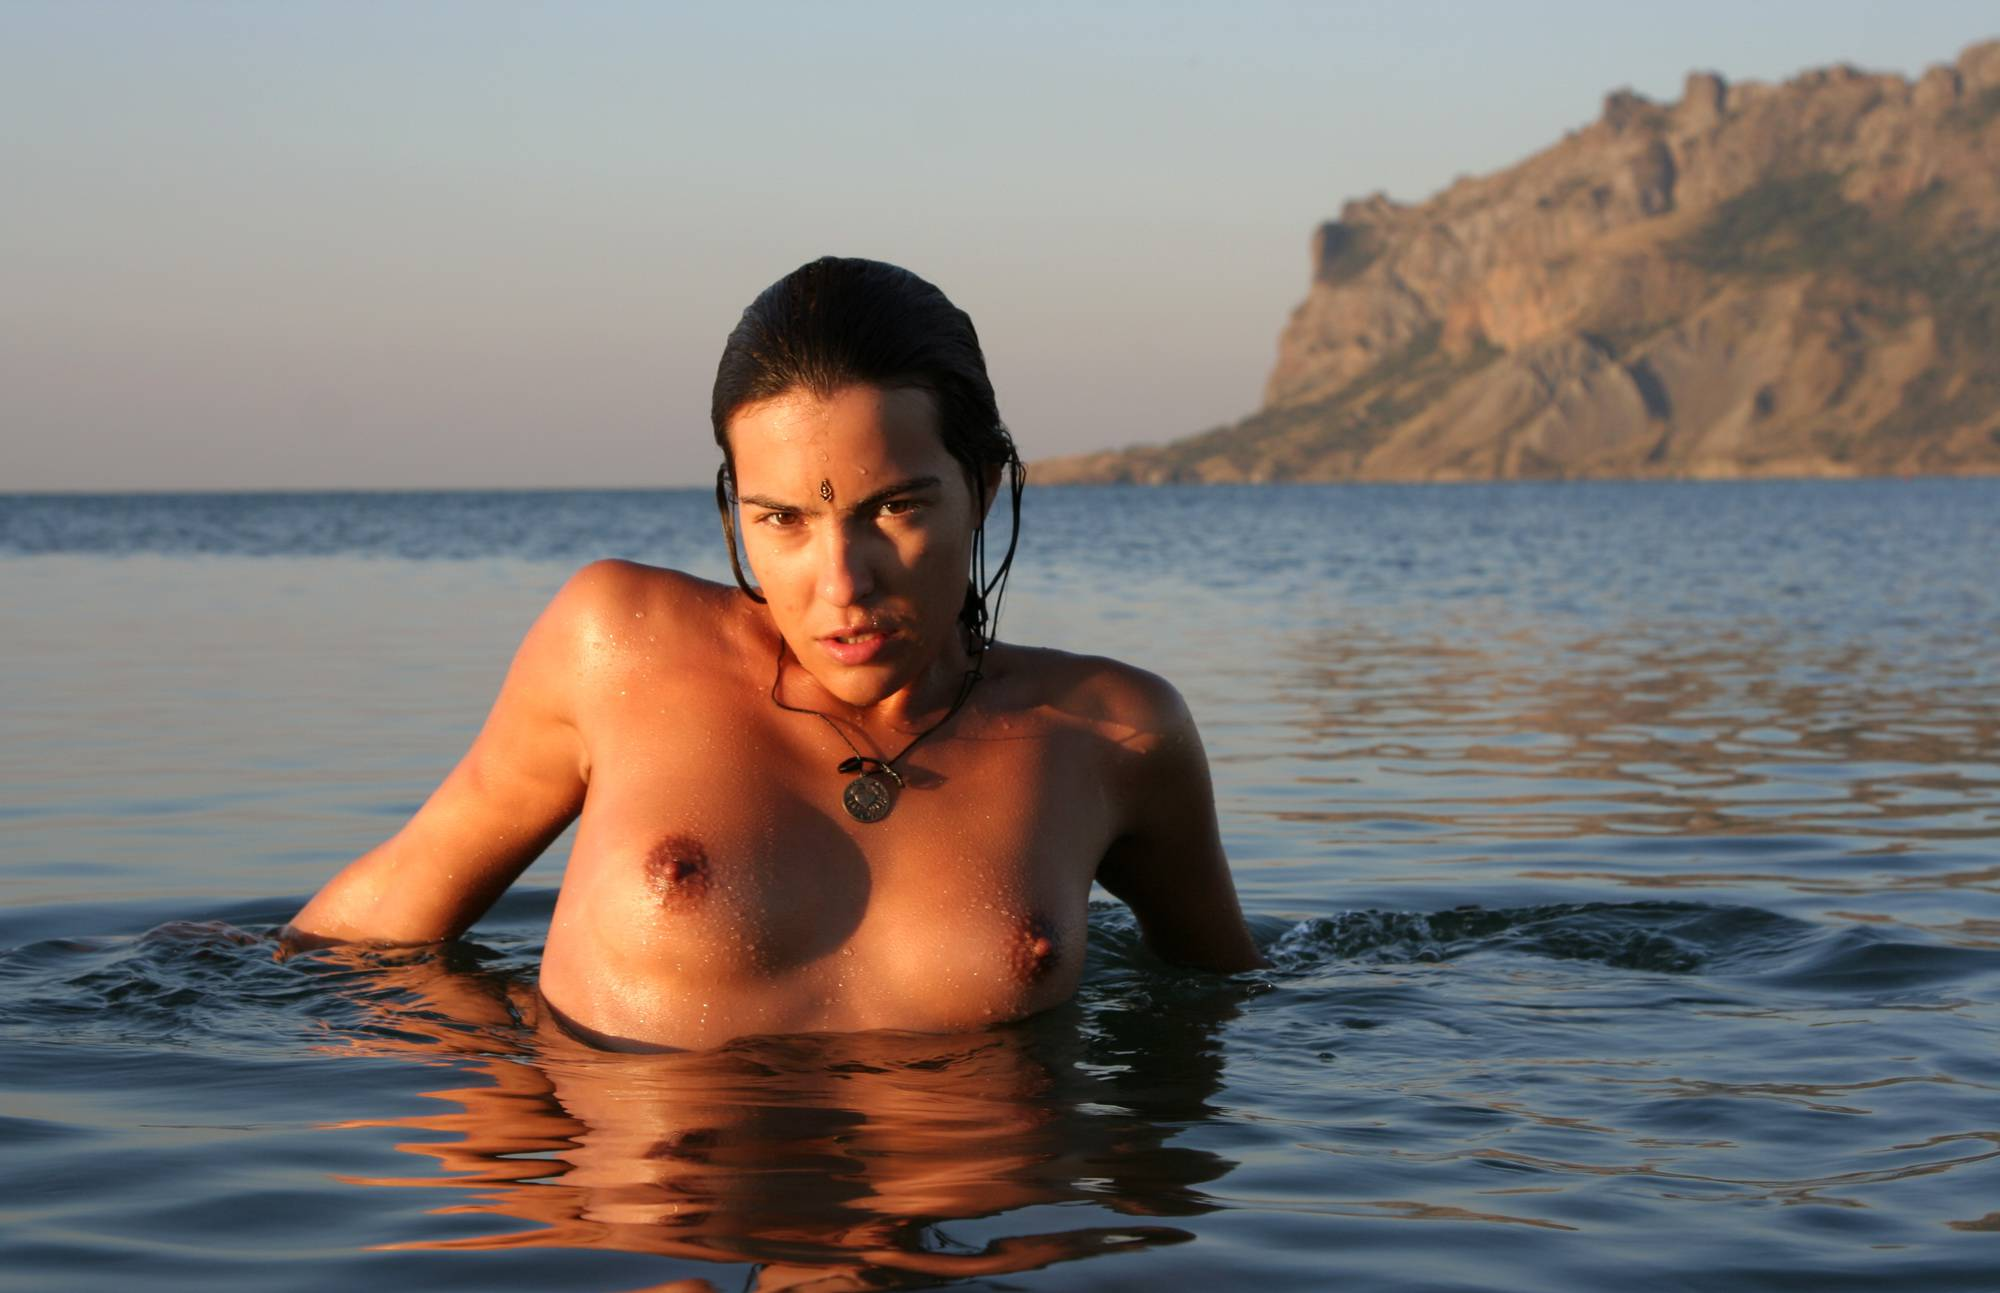 Pure Nudism Gallery Sunlight Water to the Night - 1